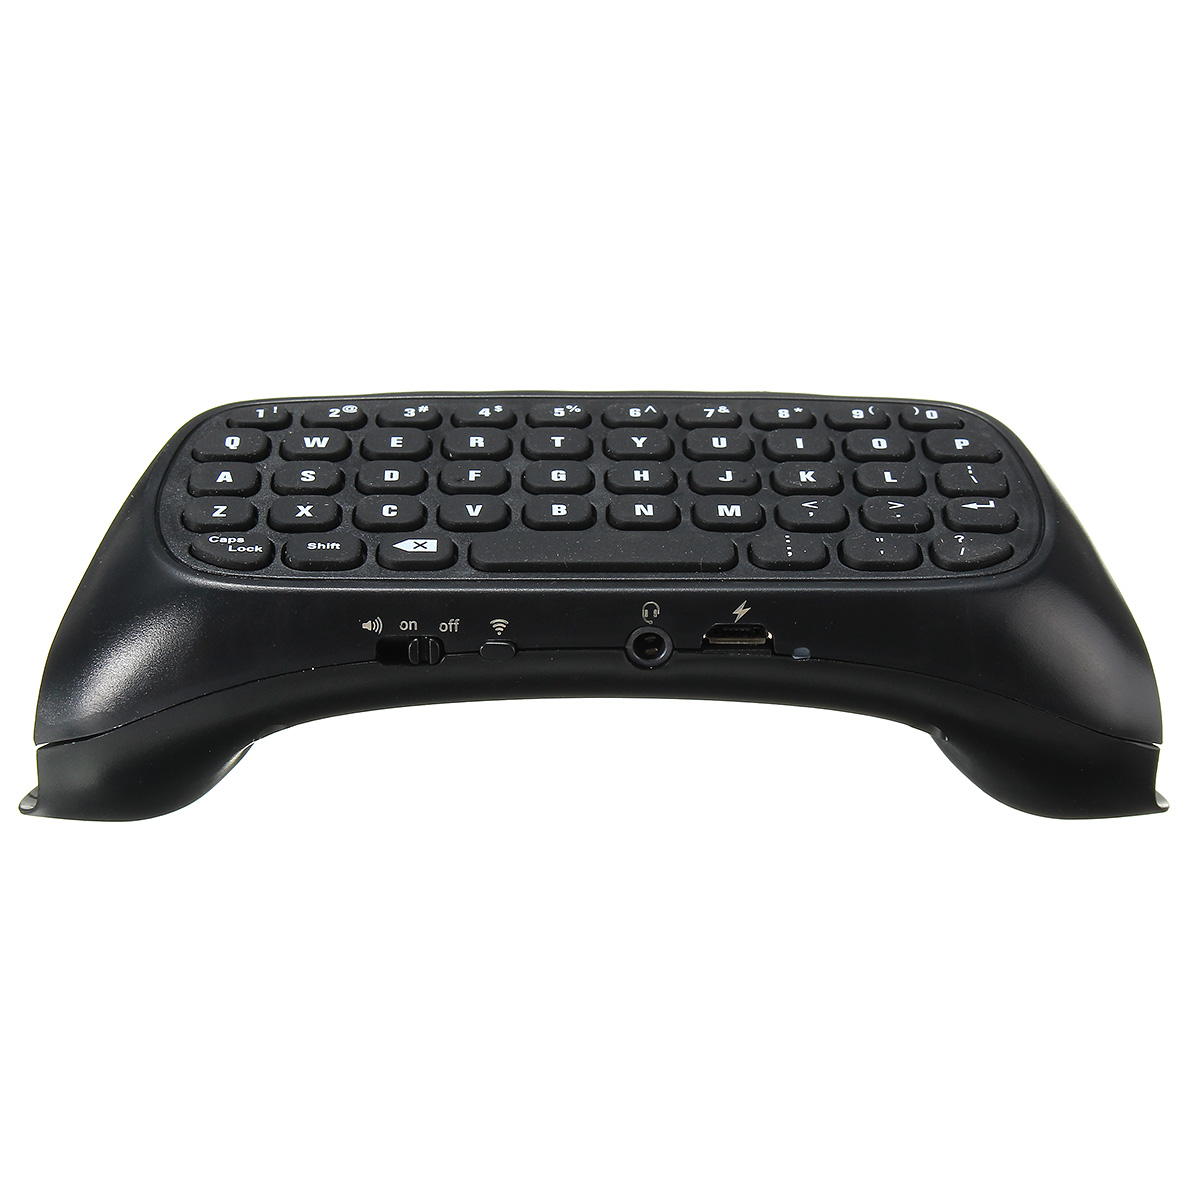 Buy 2.4G Mini Wireless Keyboard With USB Receiver For PS4 Slim Controller Black